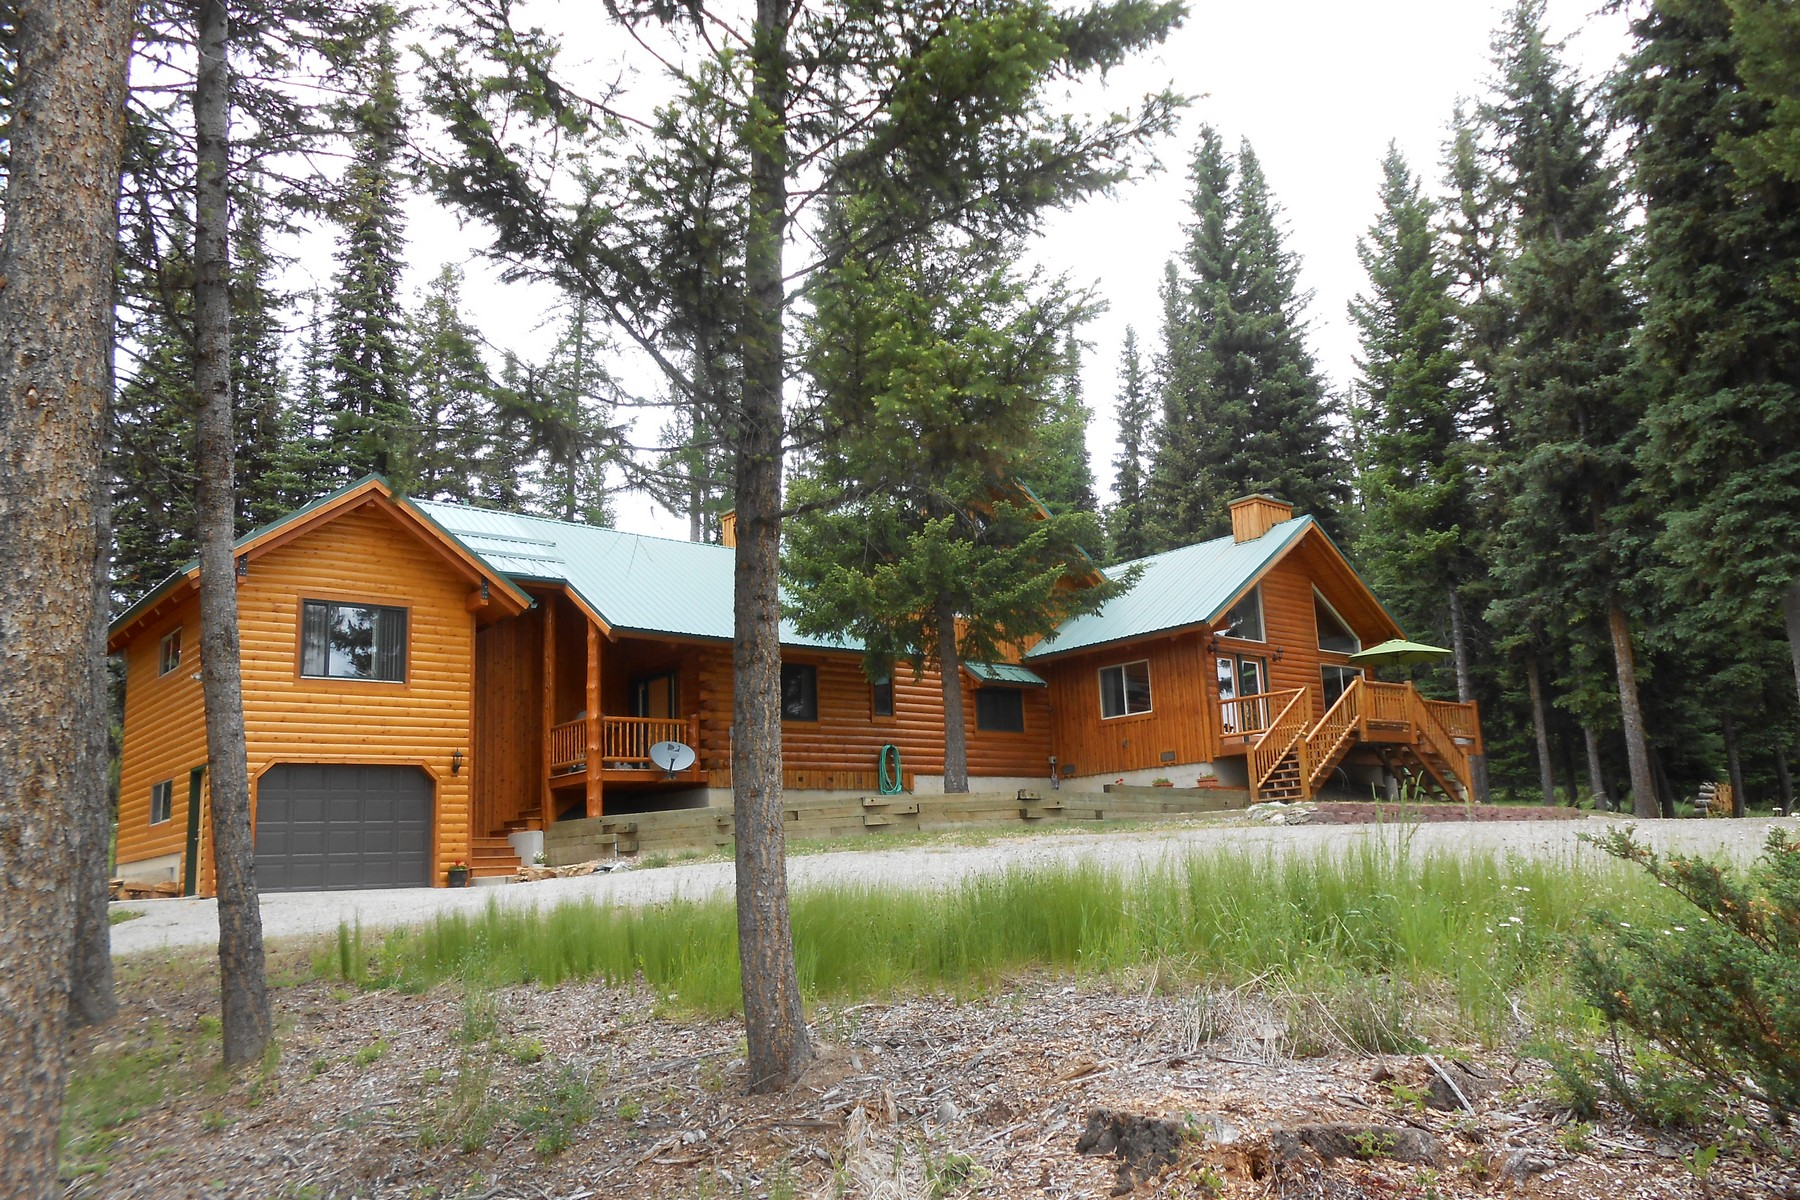 Moradia para Venda às Lodge-Style Home on 39 Acres 4301 Star Meadows Rd, Whitefish, Montana, 59937 Estados Unidos